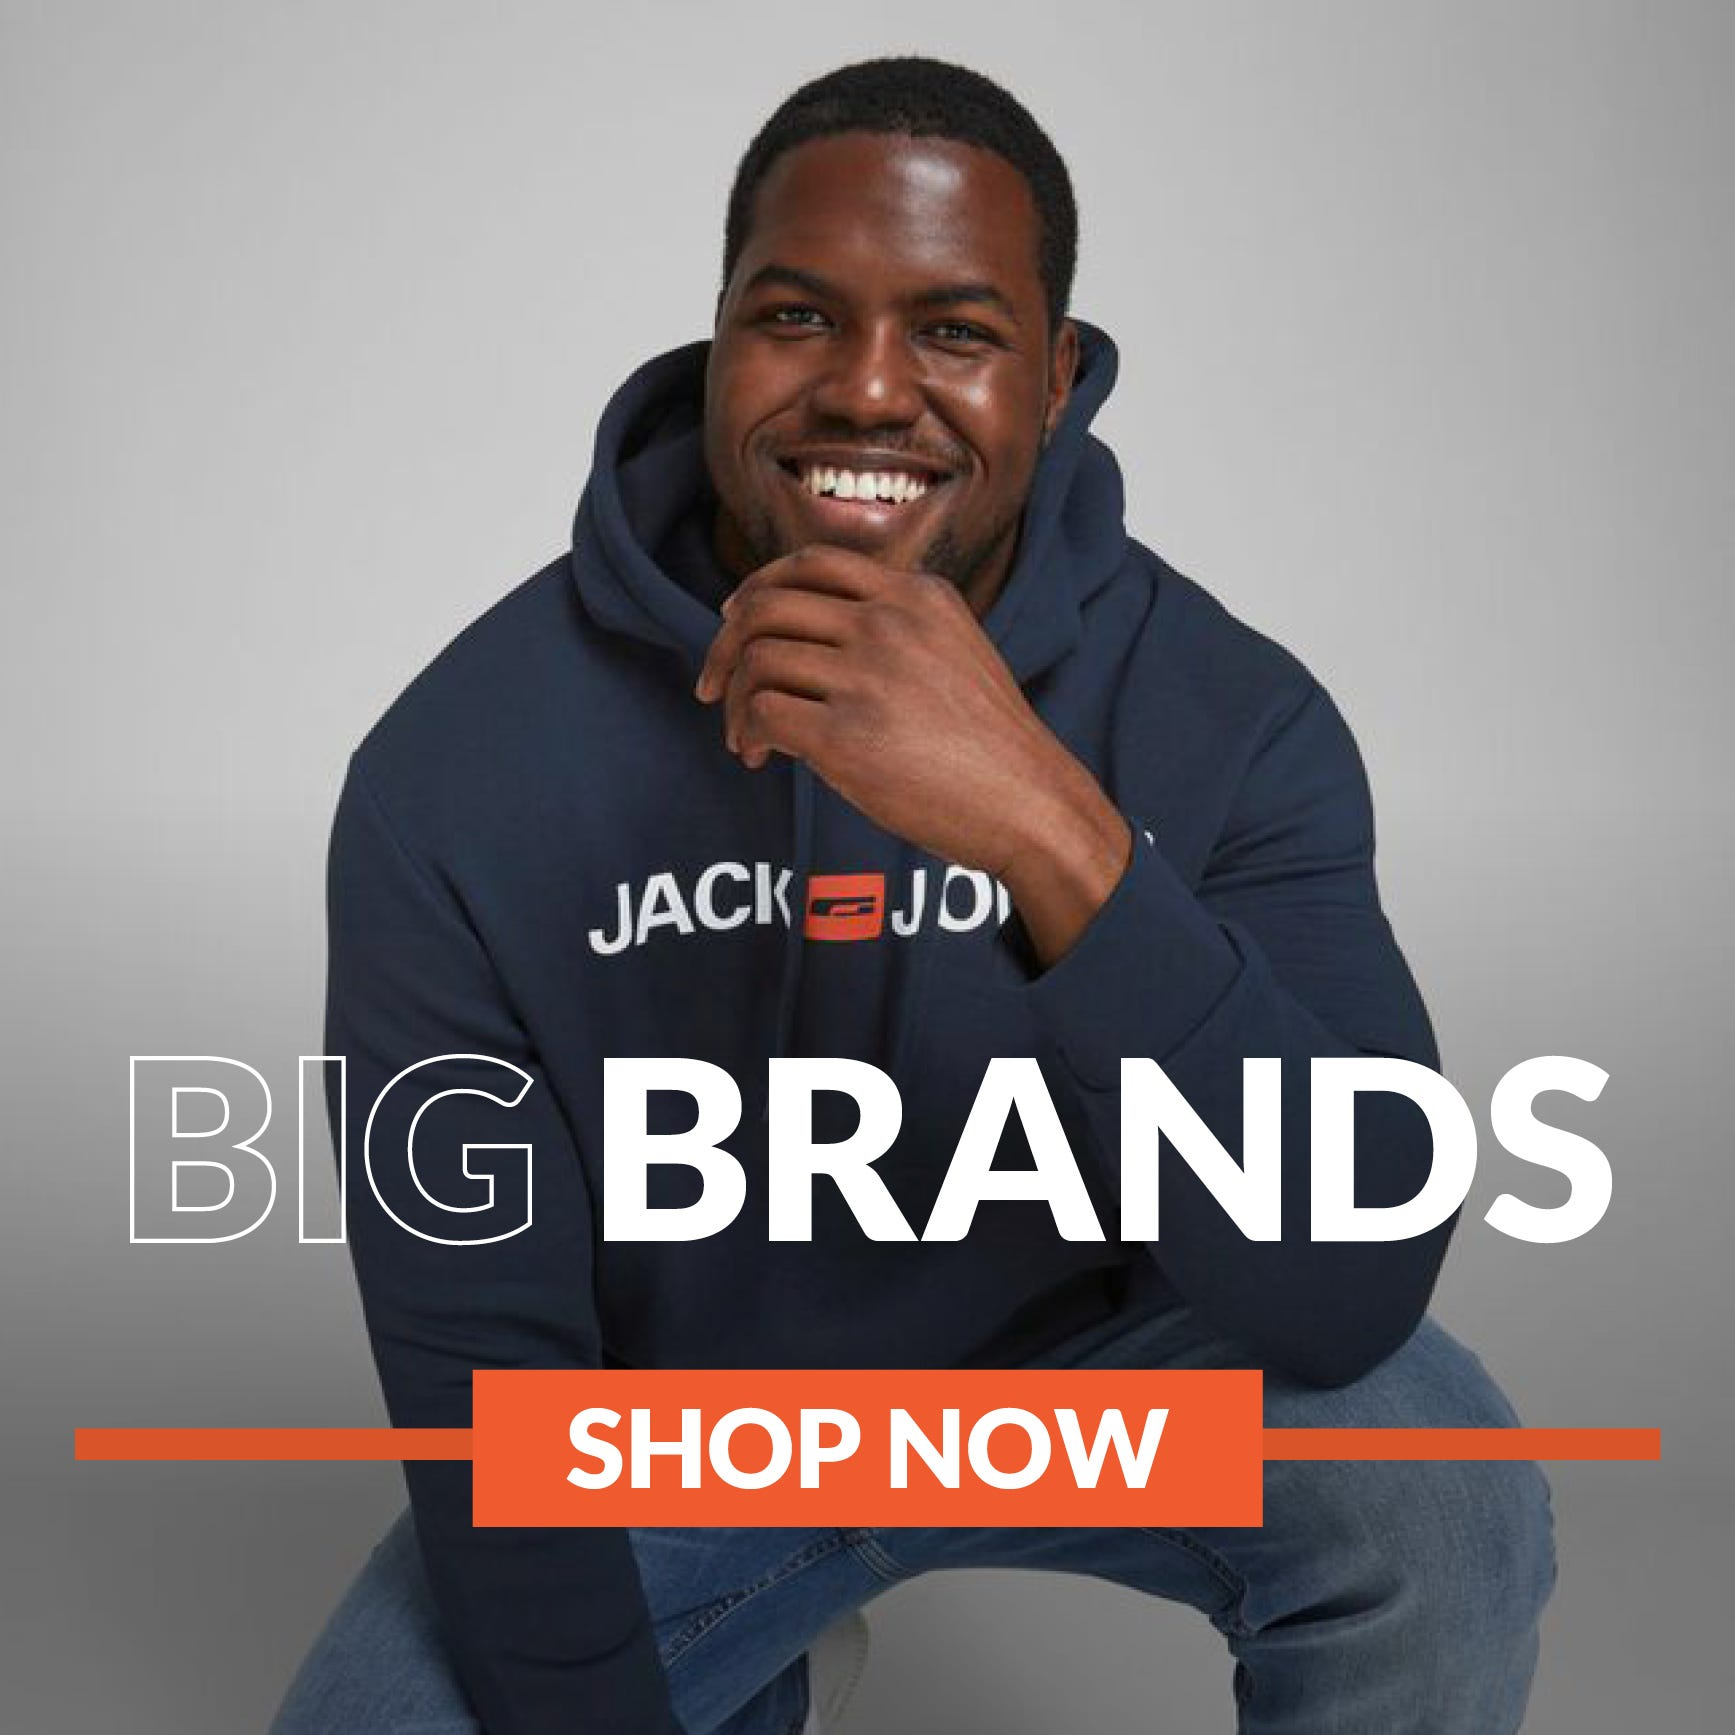 Shop Brands at BC4U